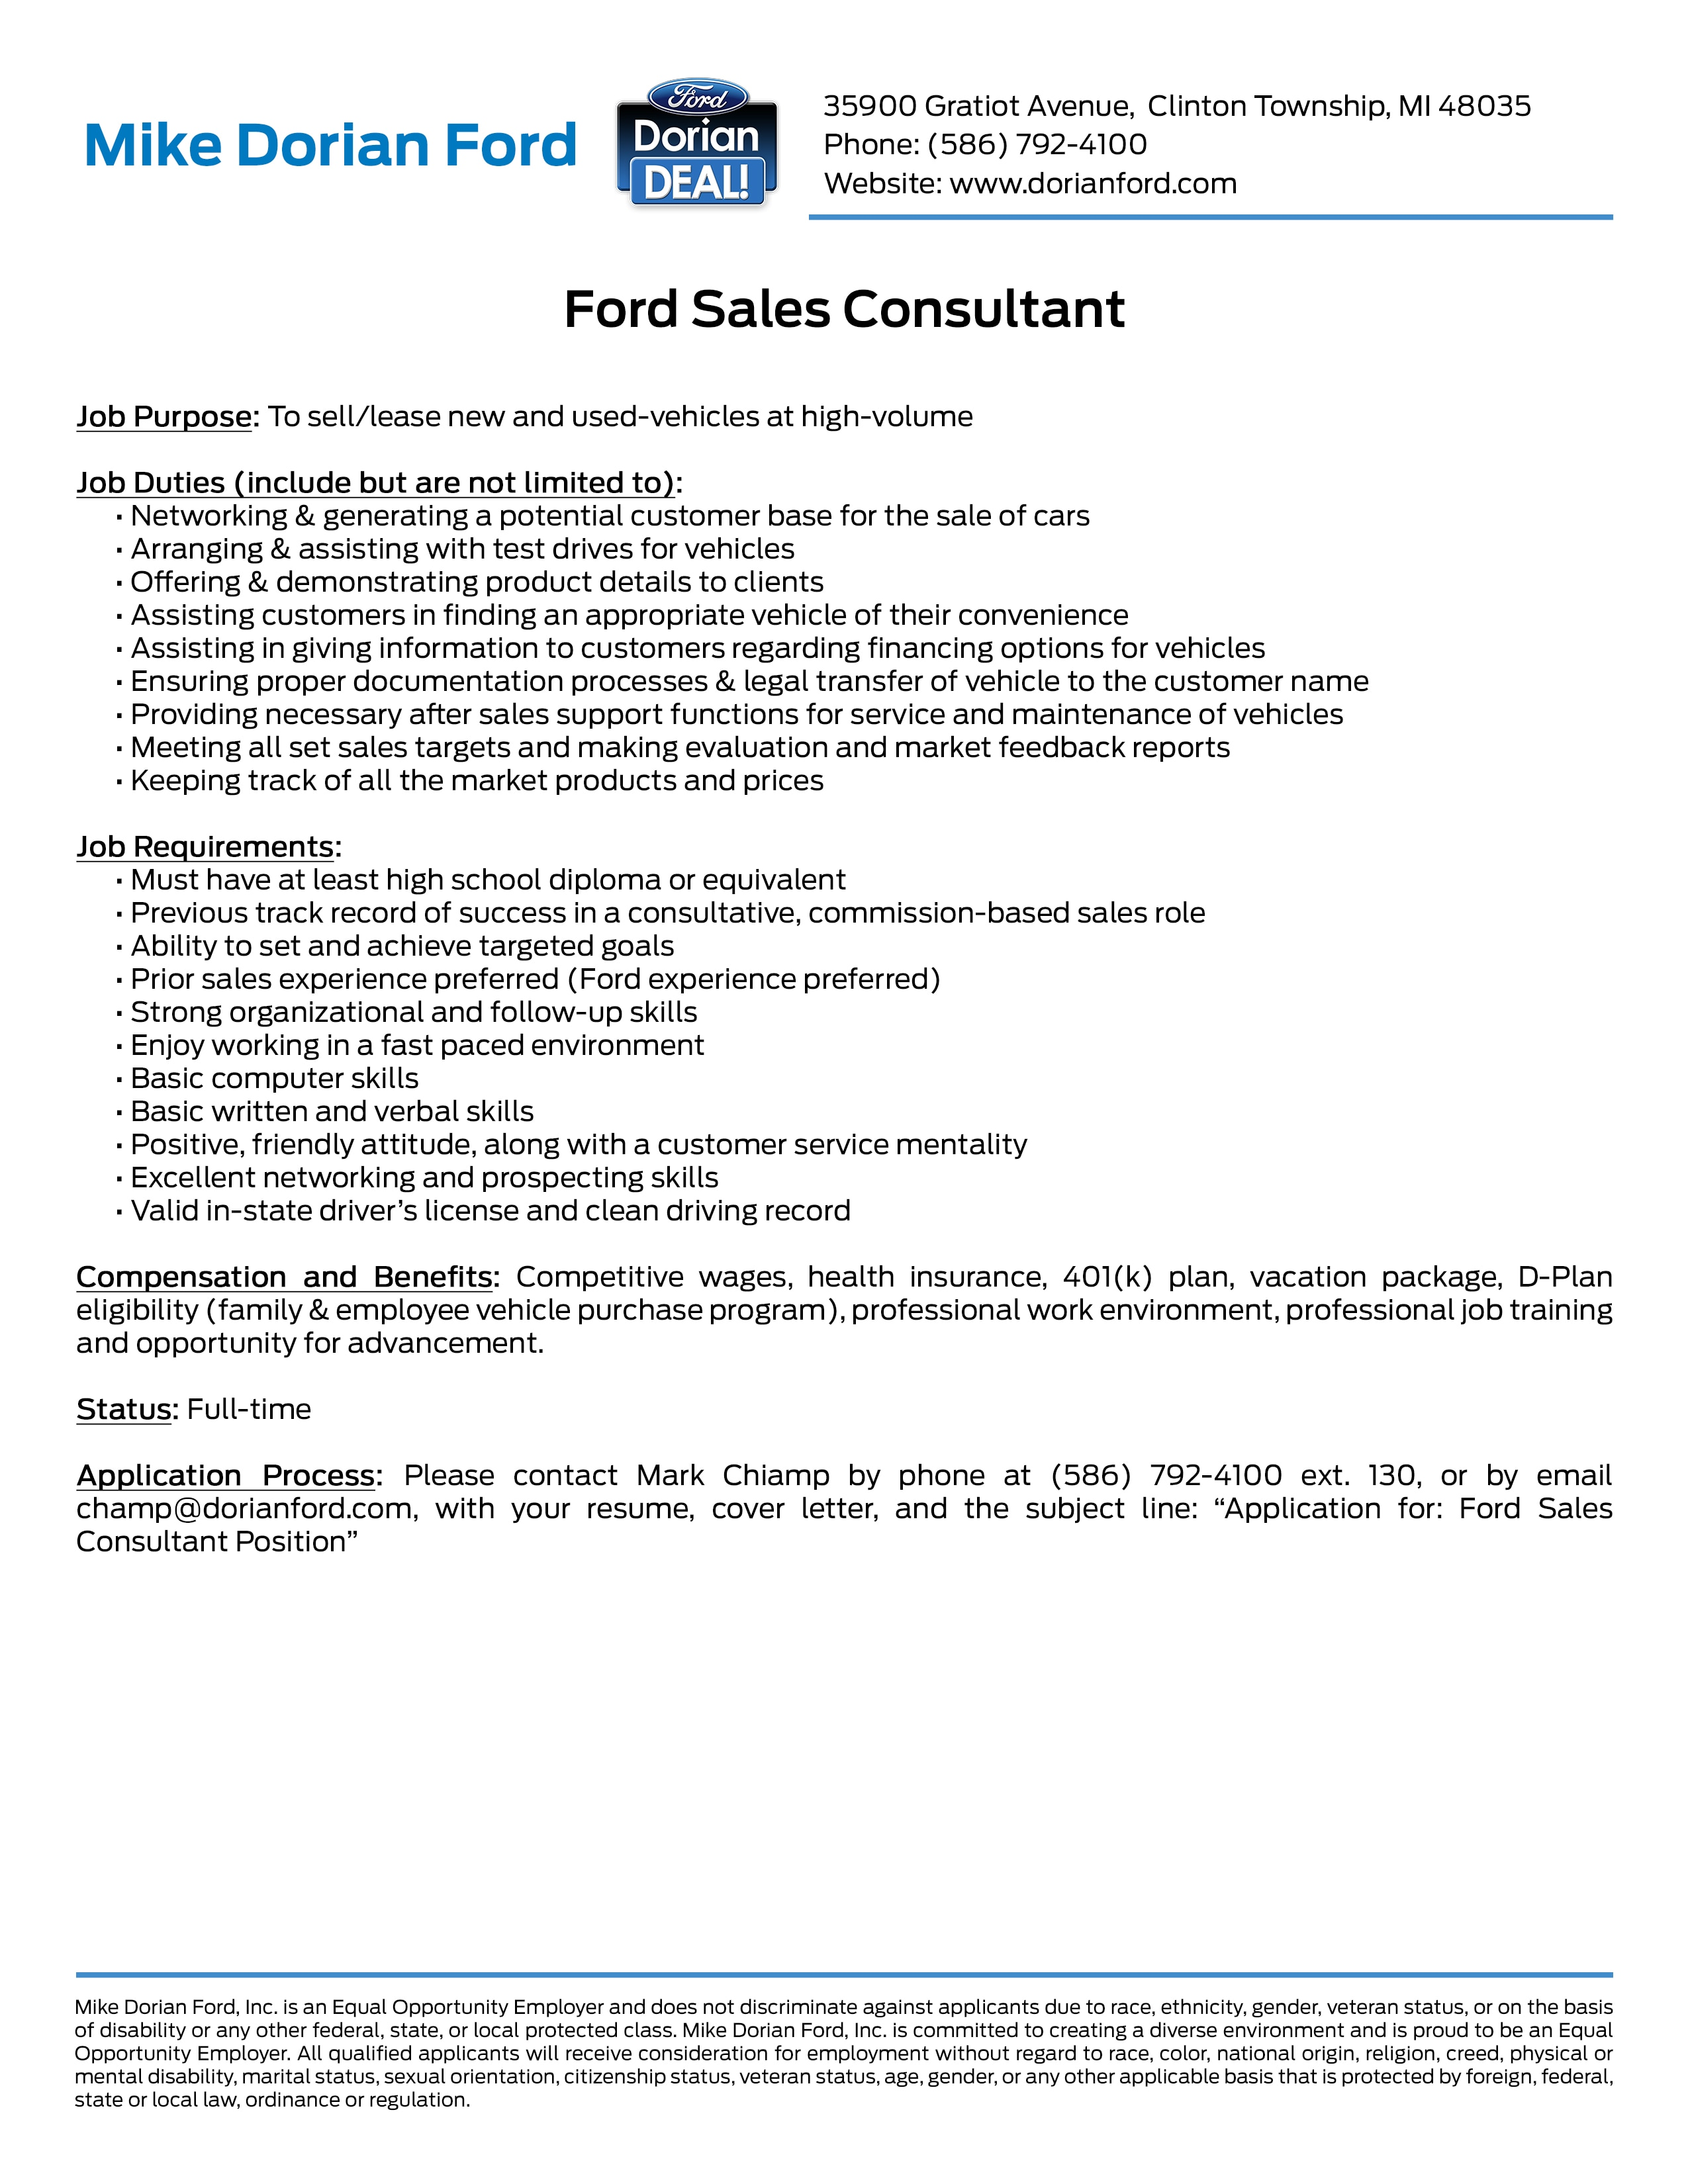 Employment Opportunities at Mike Dorian Ford